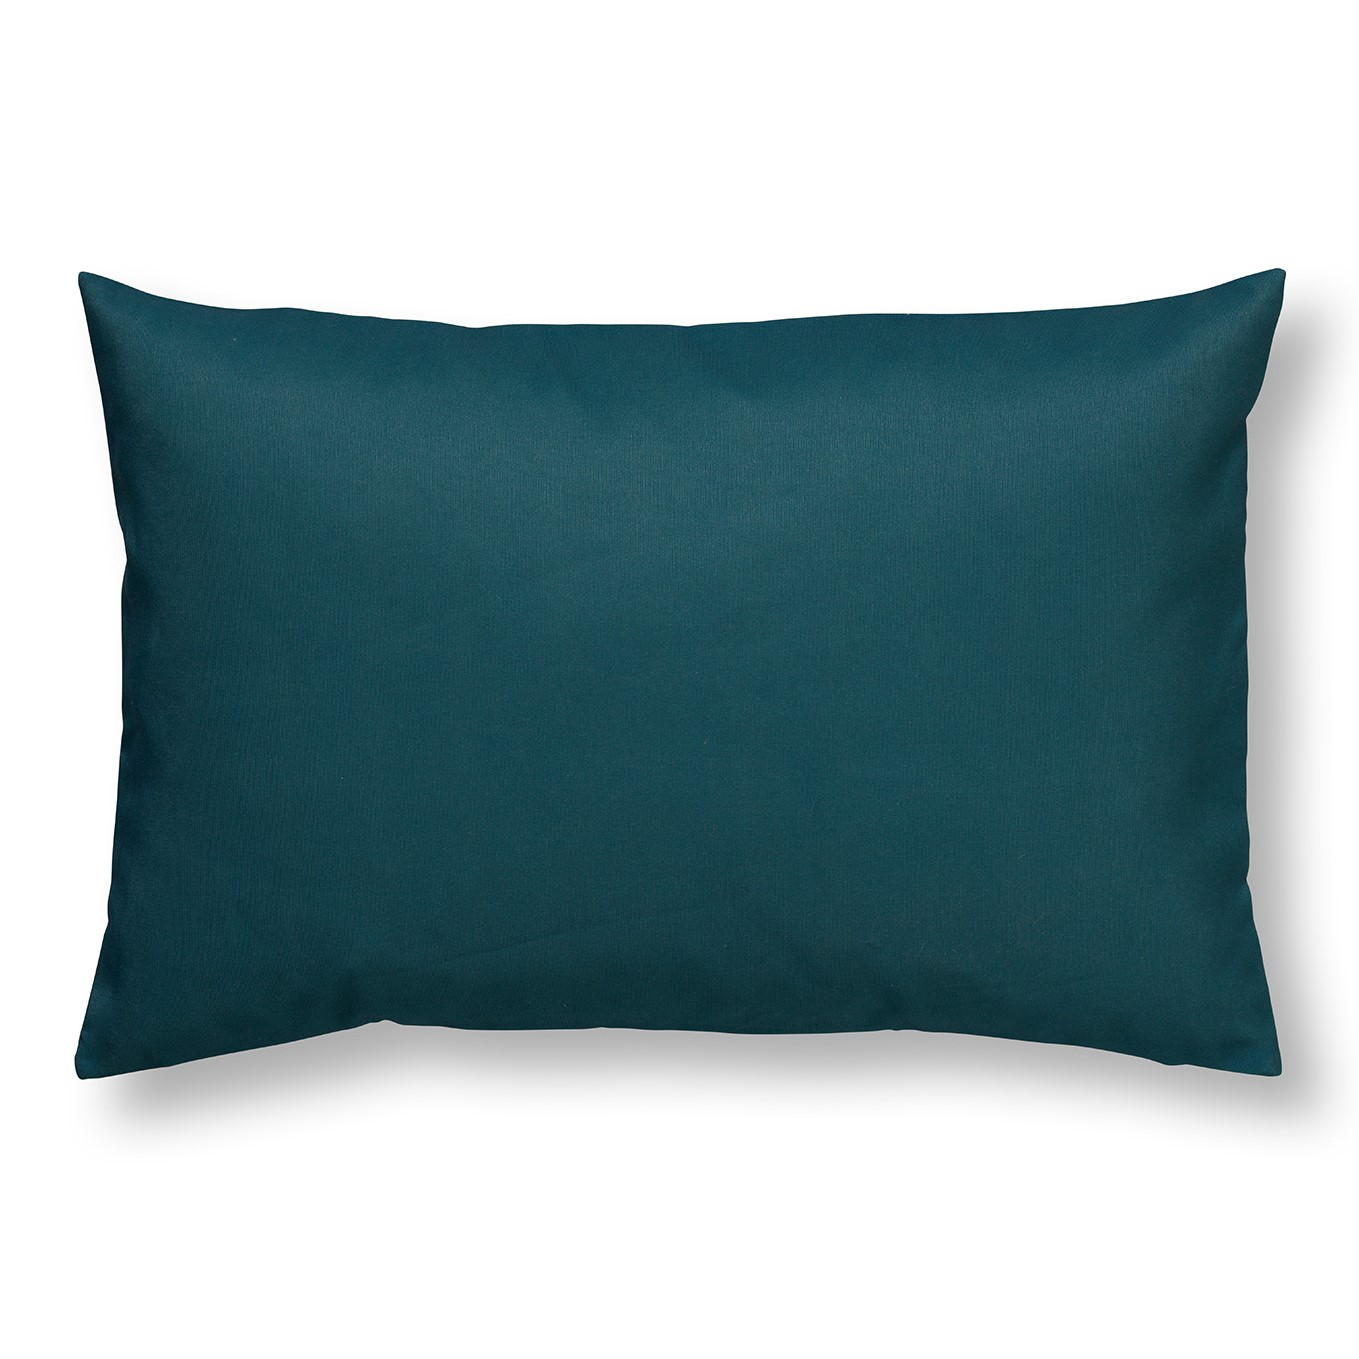 SANZENO - Kussenhoes outdoor Sagebrush Green 40x60 cm